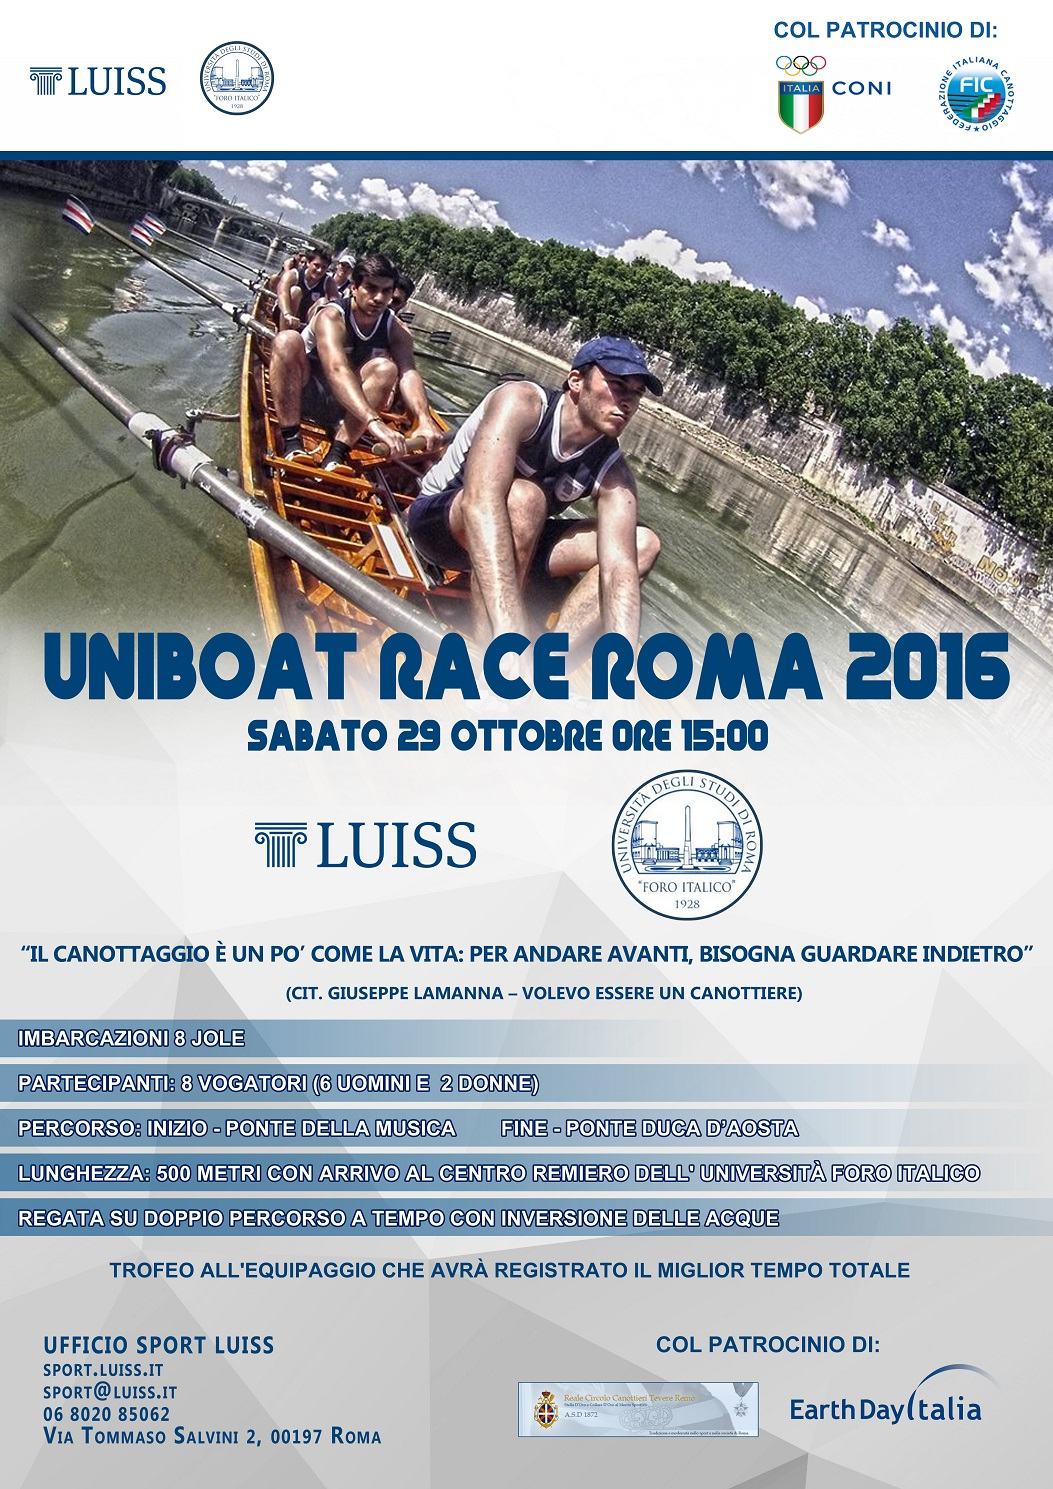 UNIBOAT RACE ULTIMATO